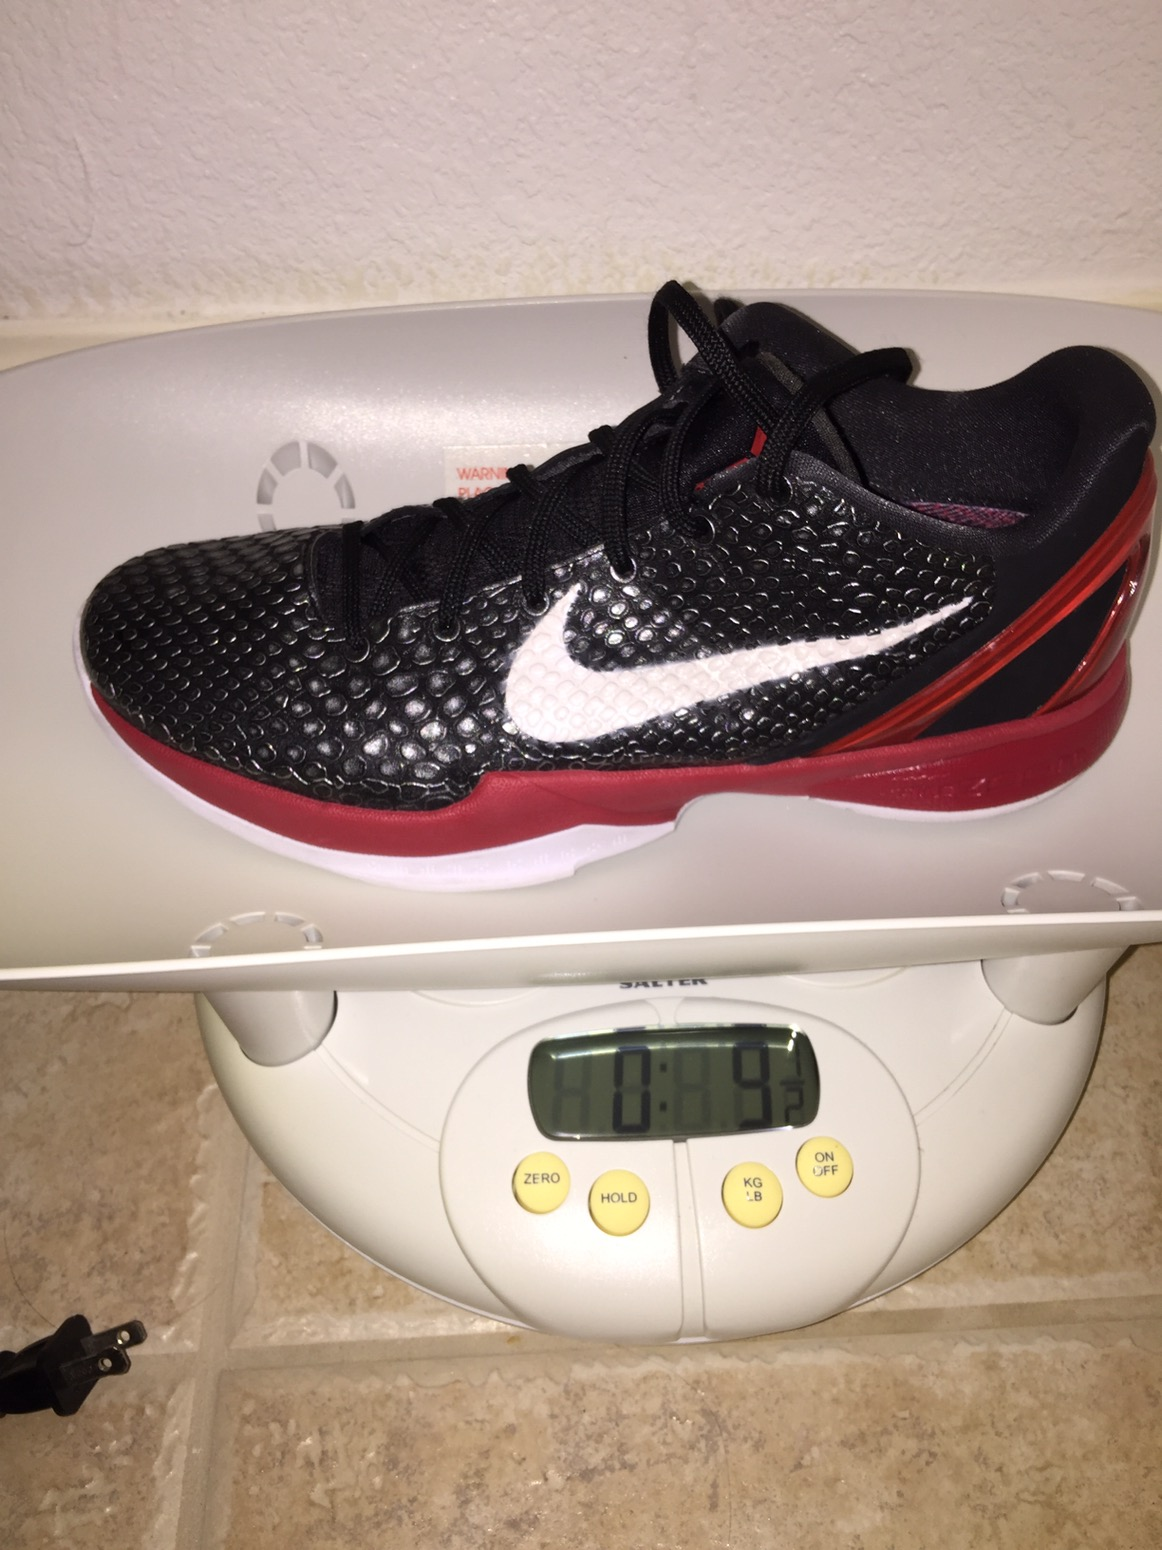 on sale 5acc7 9349e The Archive  Nike Zoom Kobe VI Performance Review and Analysis